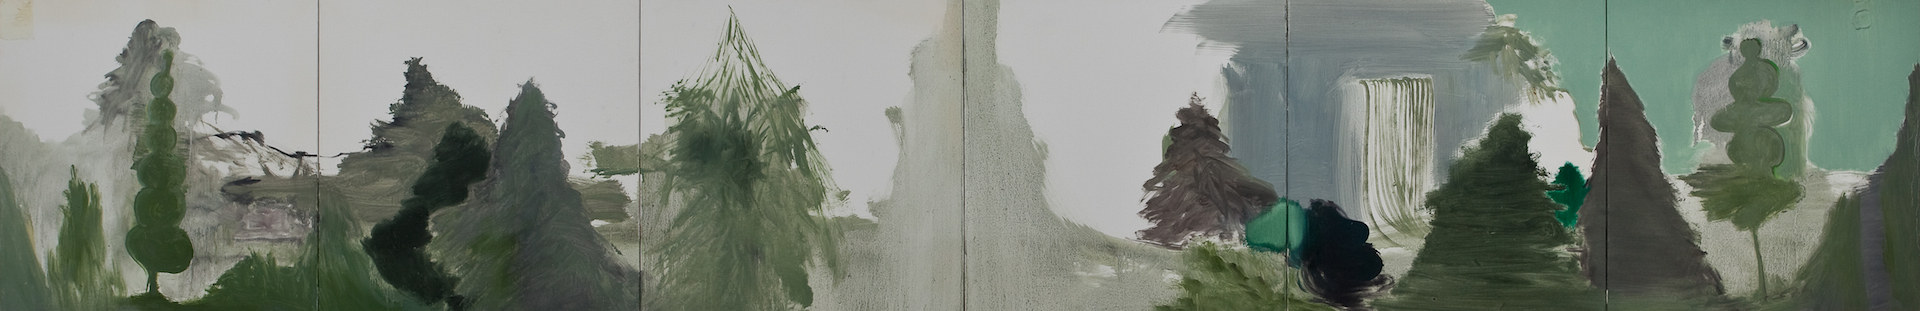 Module 01-06, 2011, oil on canvas,455.5x273cm